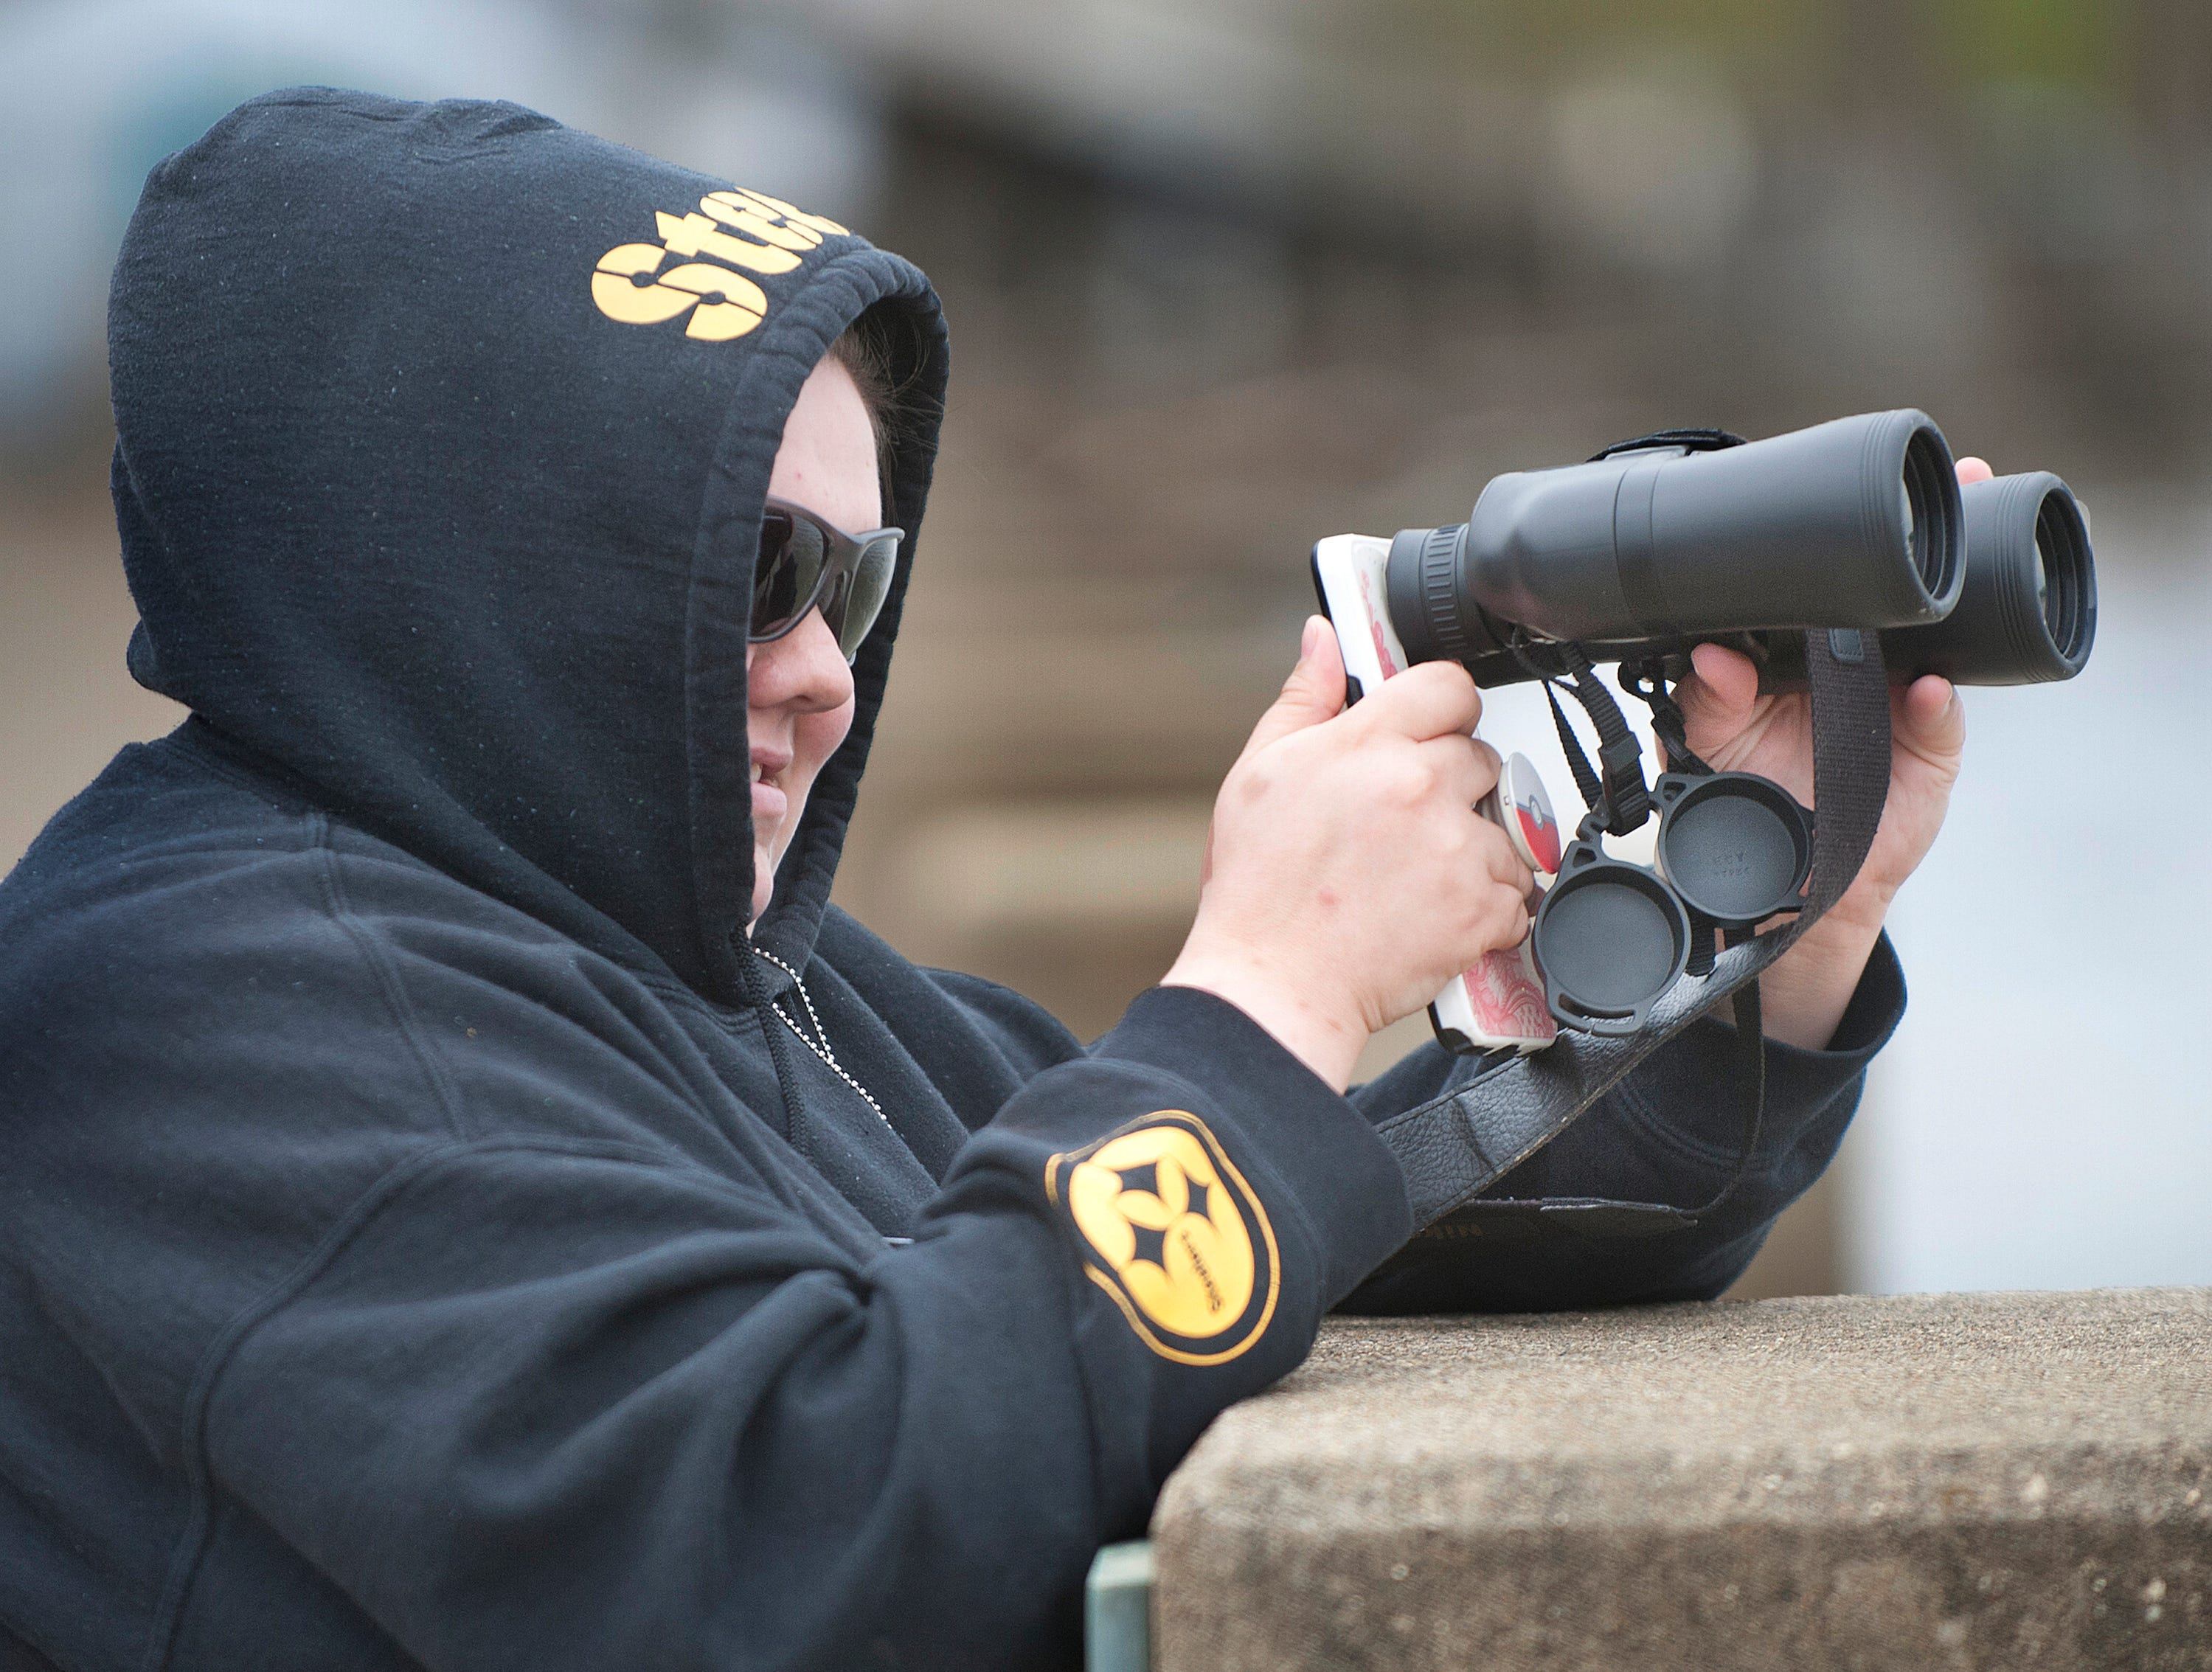 Destiny Smith of Valley Station put her phone camera up to a pair of binoculars to get close-ups of planes over the Ohio River rehearsing for the air show.12 April 2019